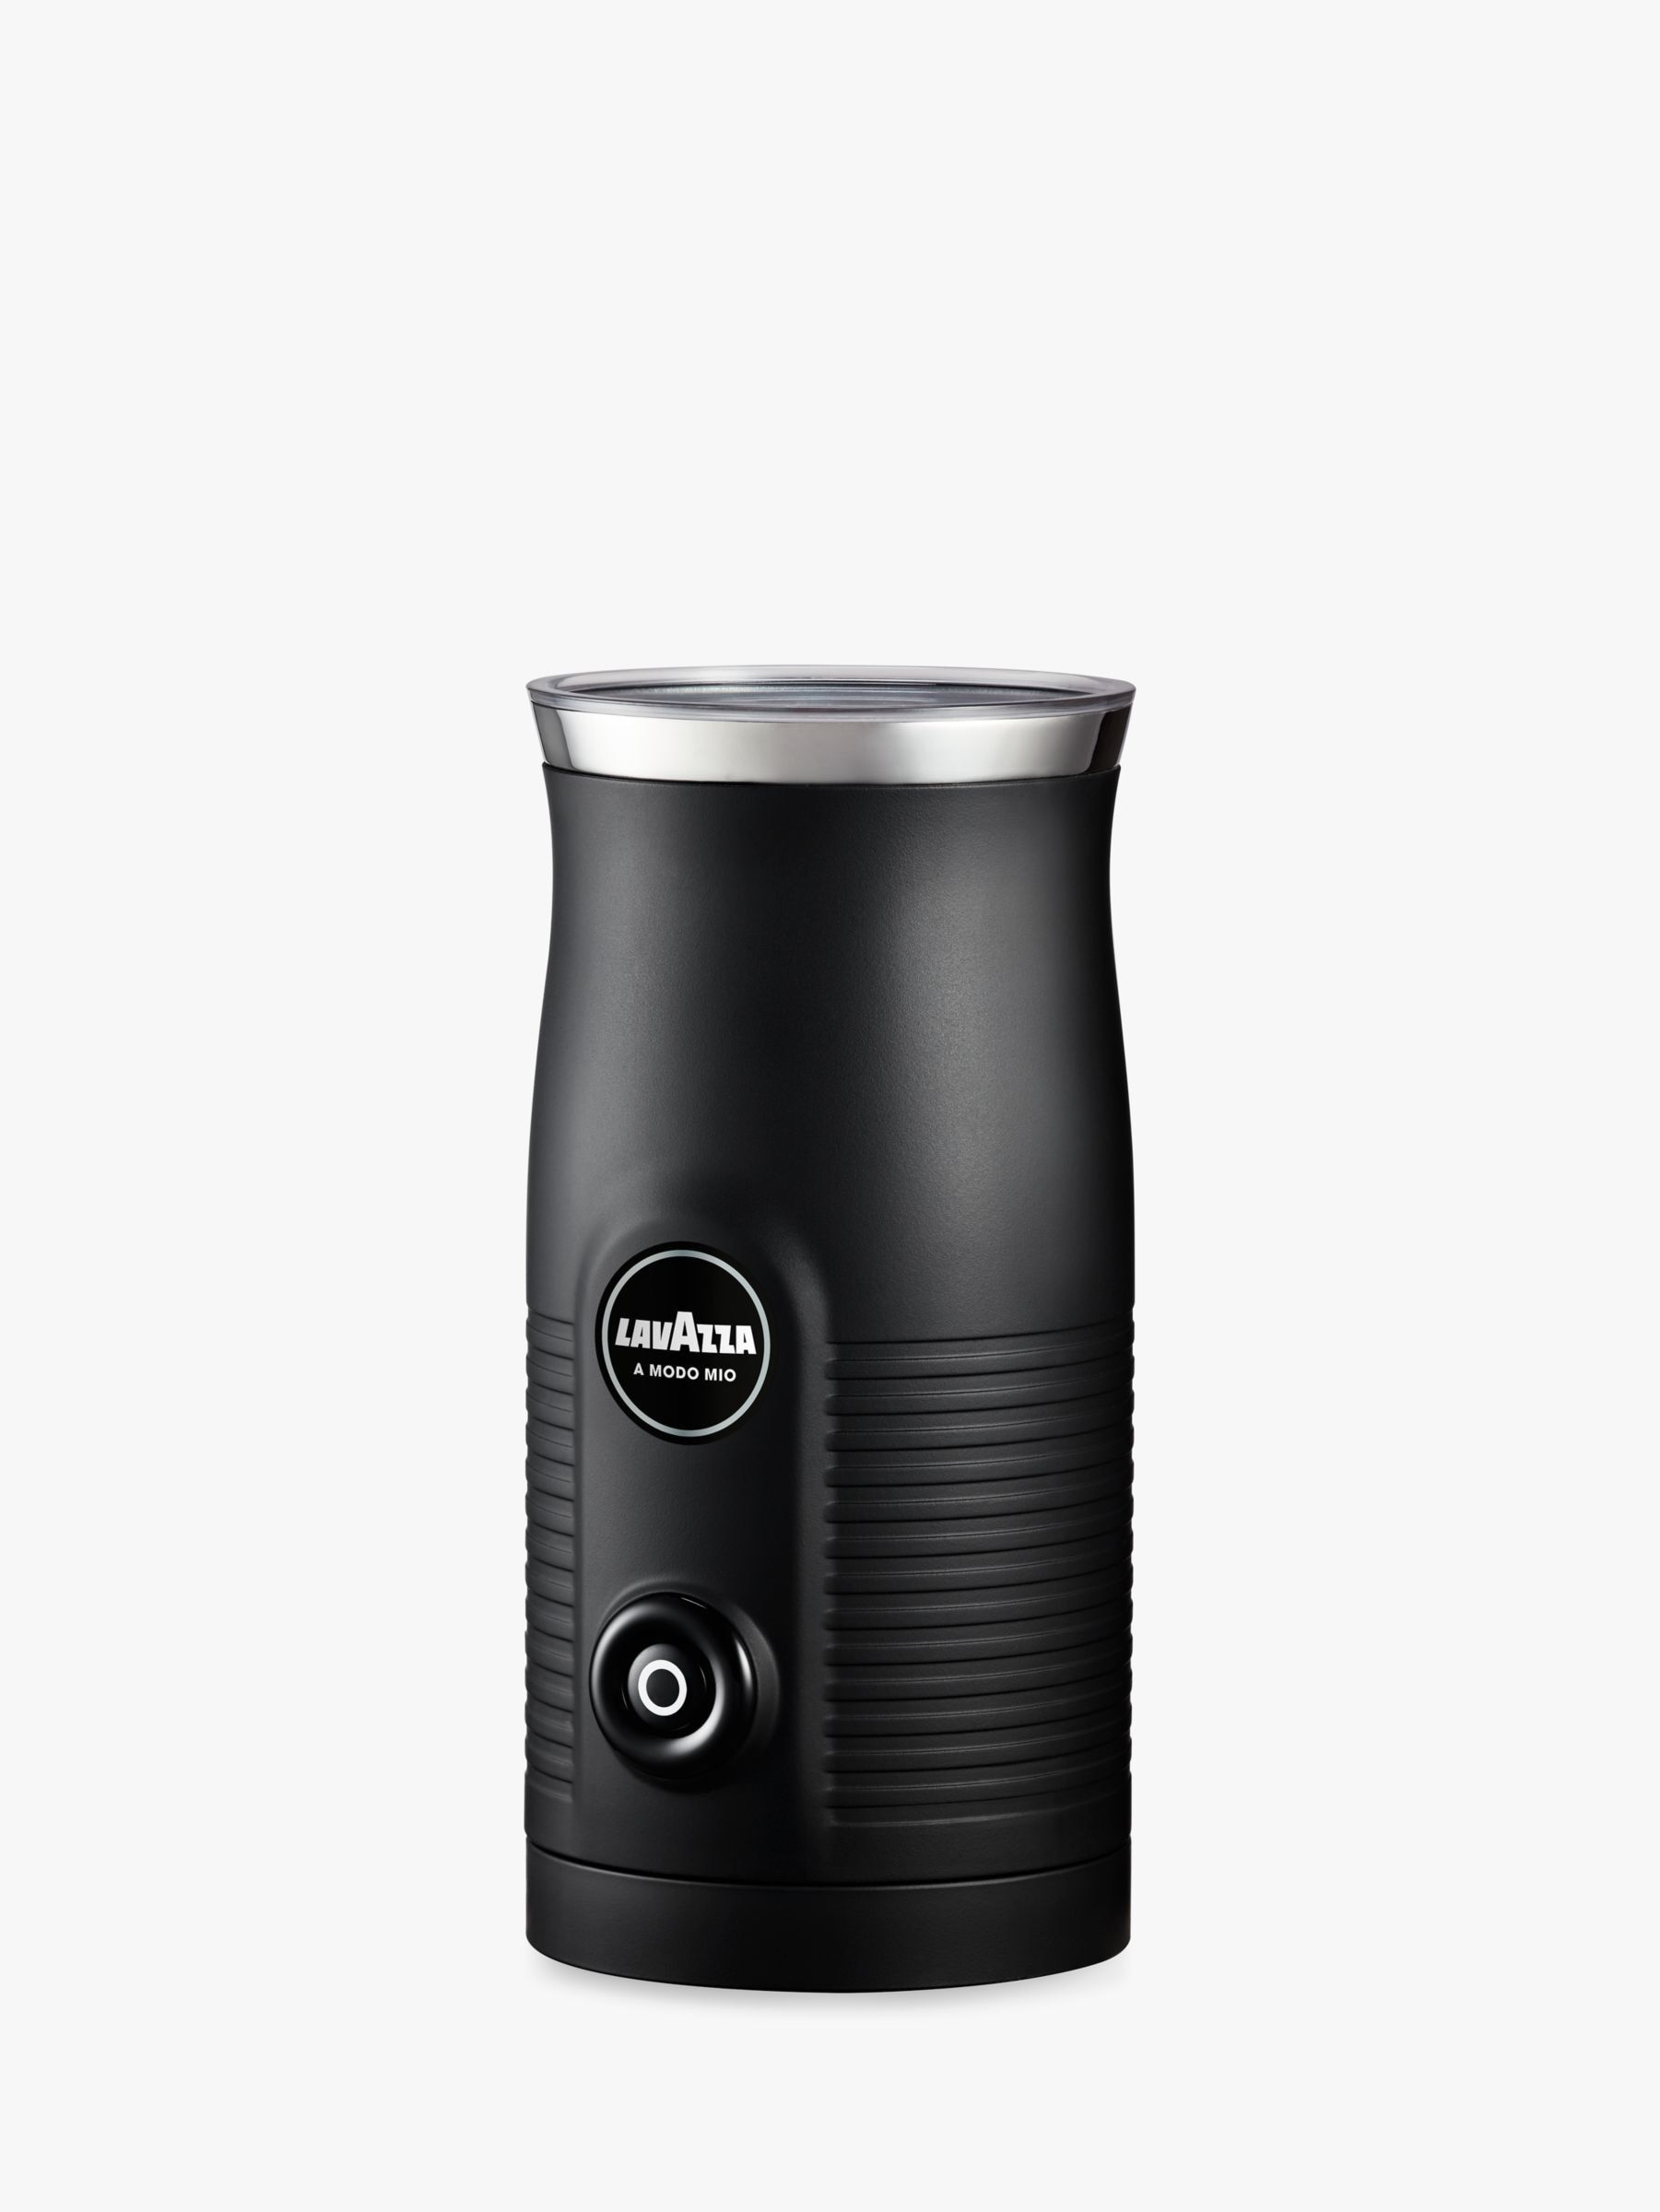 Lavazza A Modo Mio MilkEasy Milk Frother Milk frother